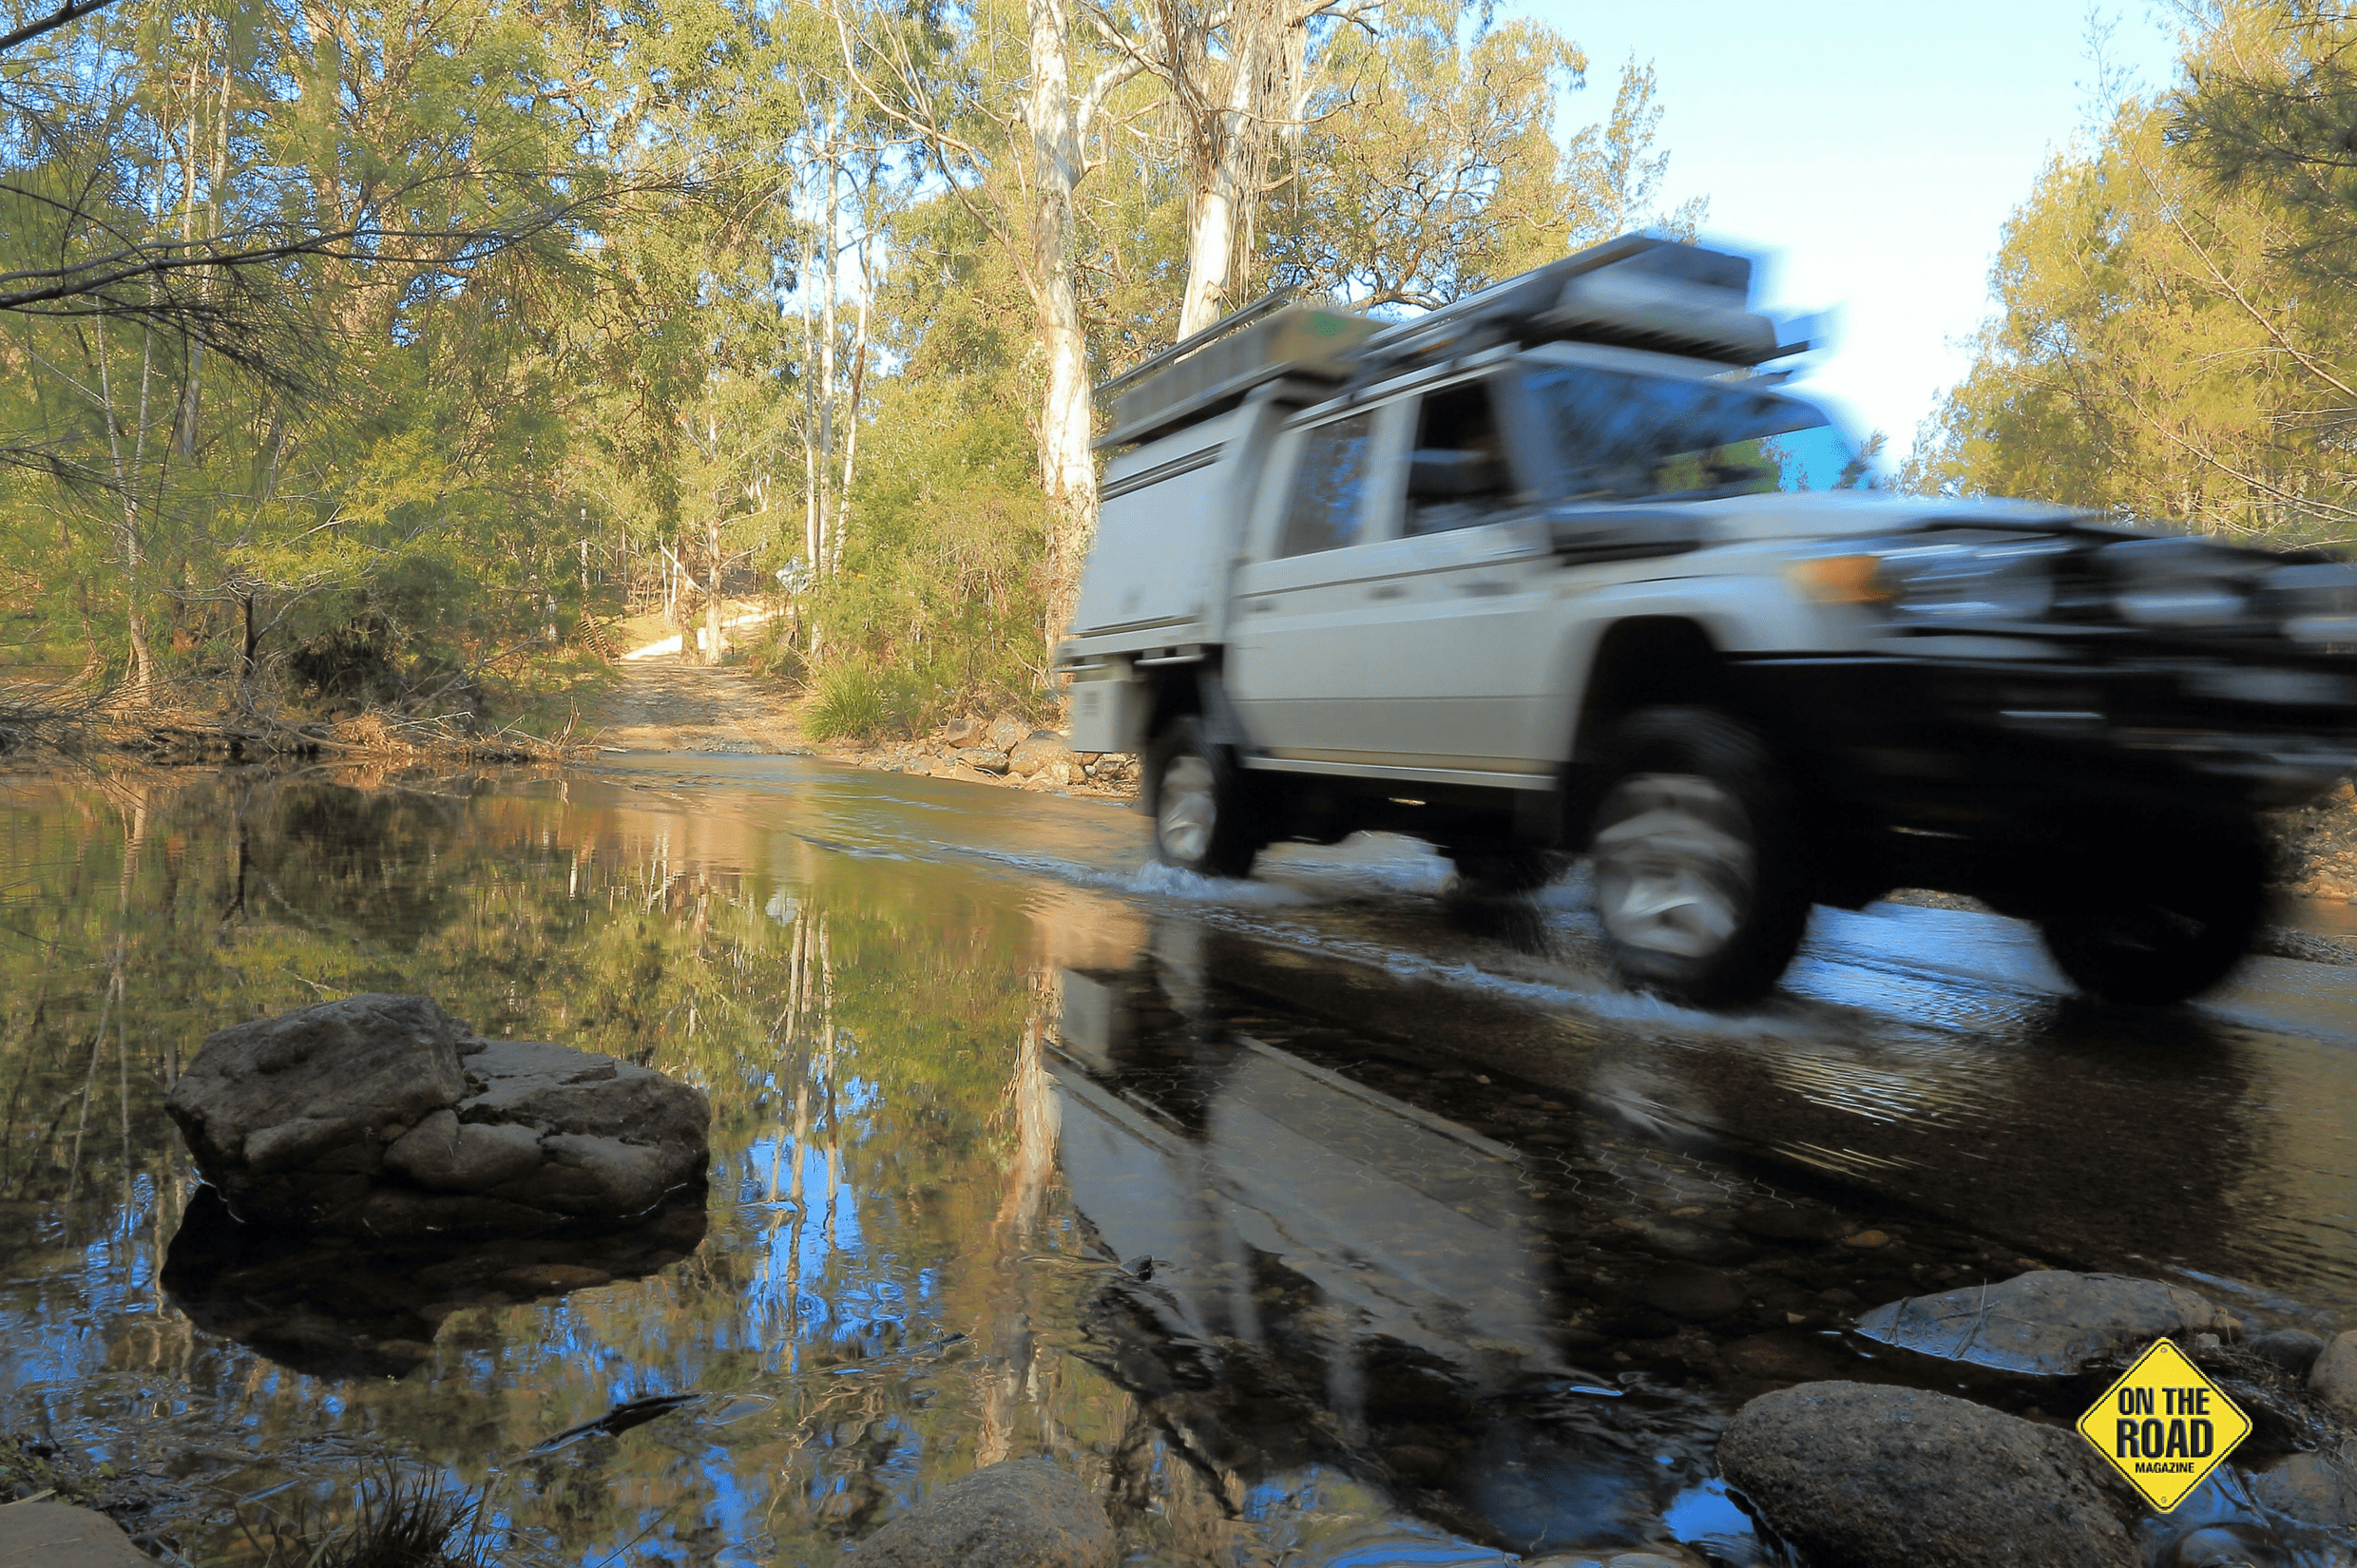 Crossing Woila Creek Causeway in the Belowra Valley